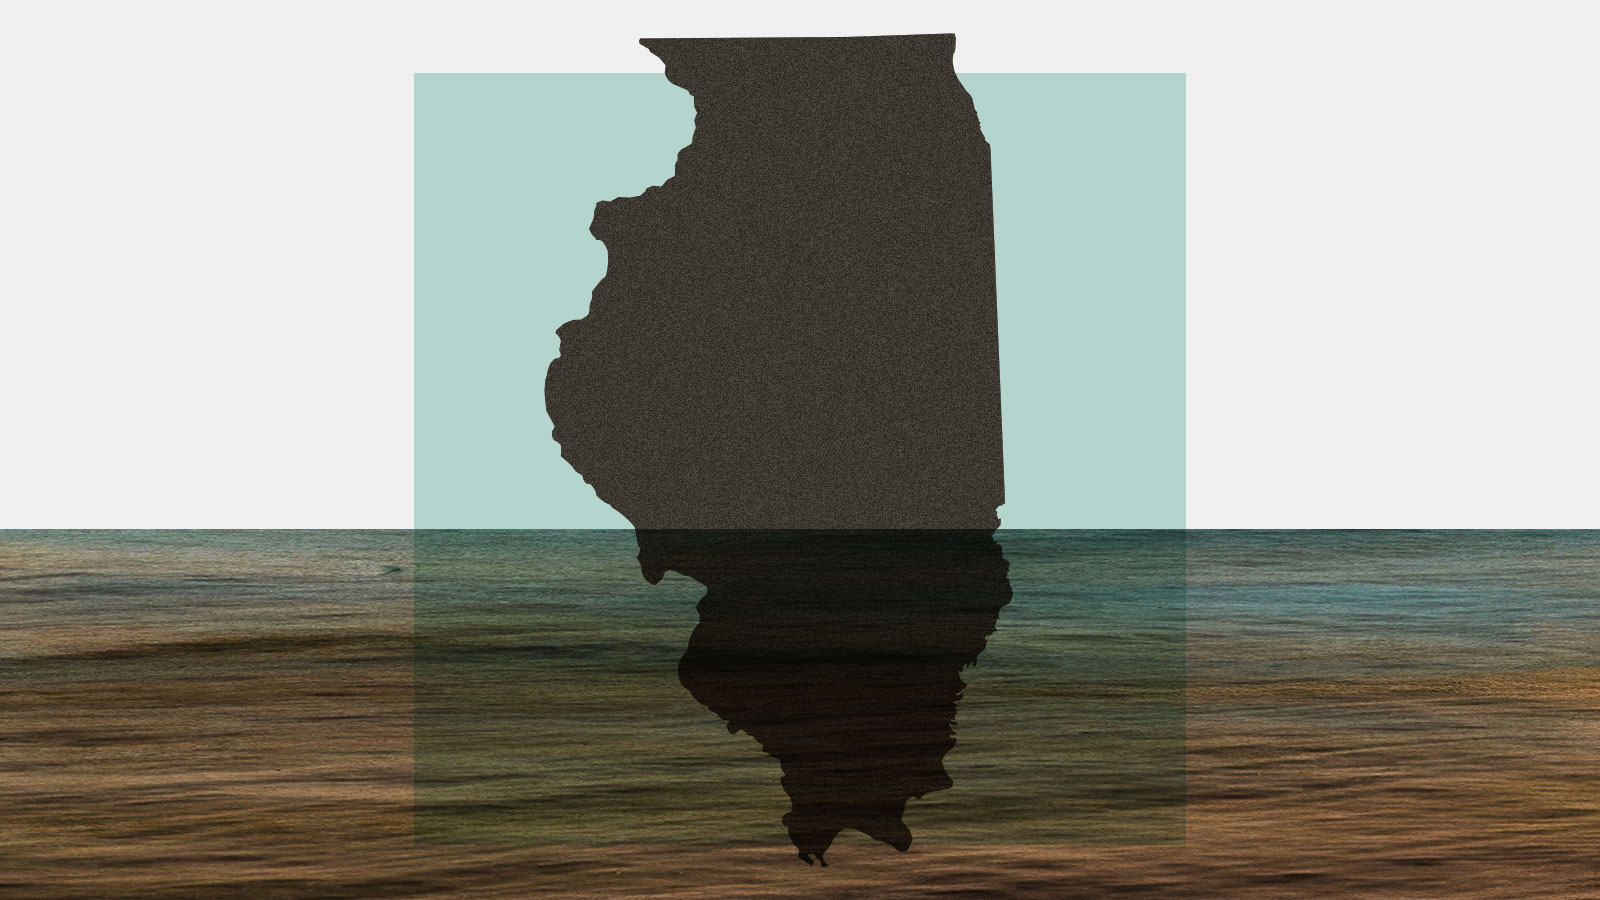 Silhouette of Illinois state with floodwater covering it halfway